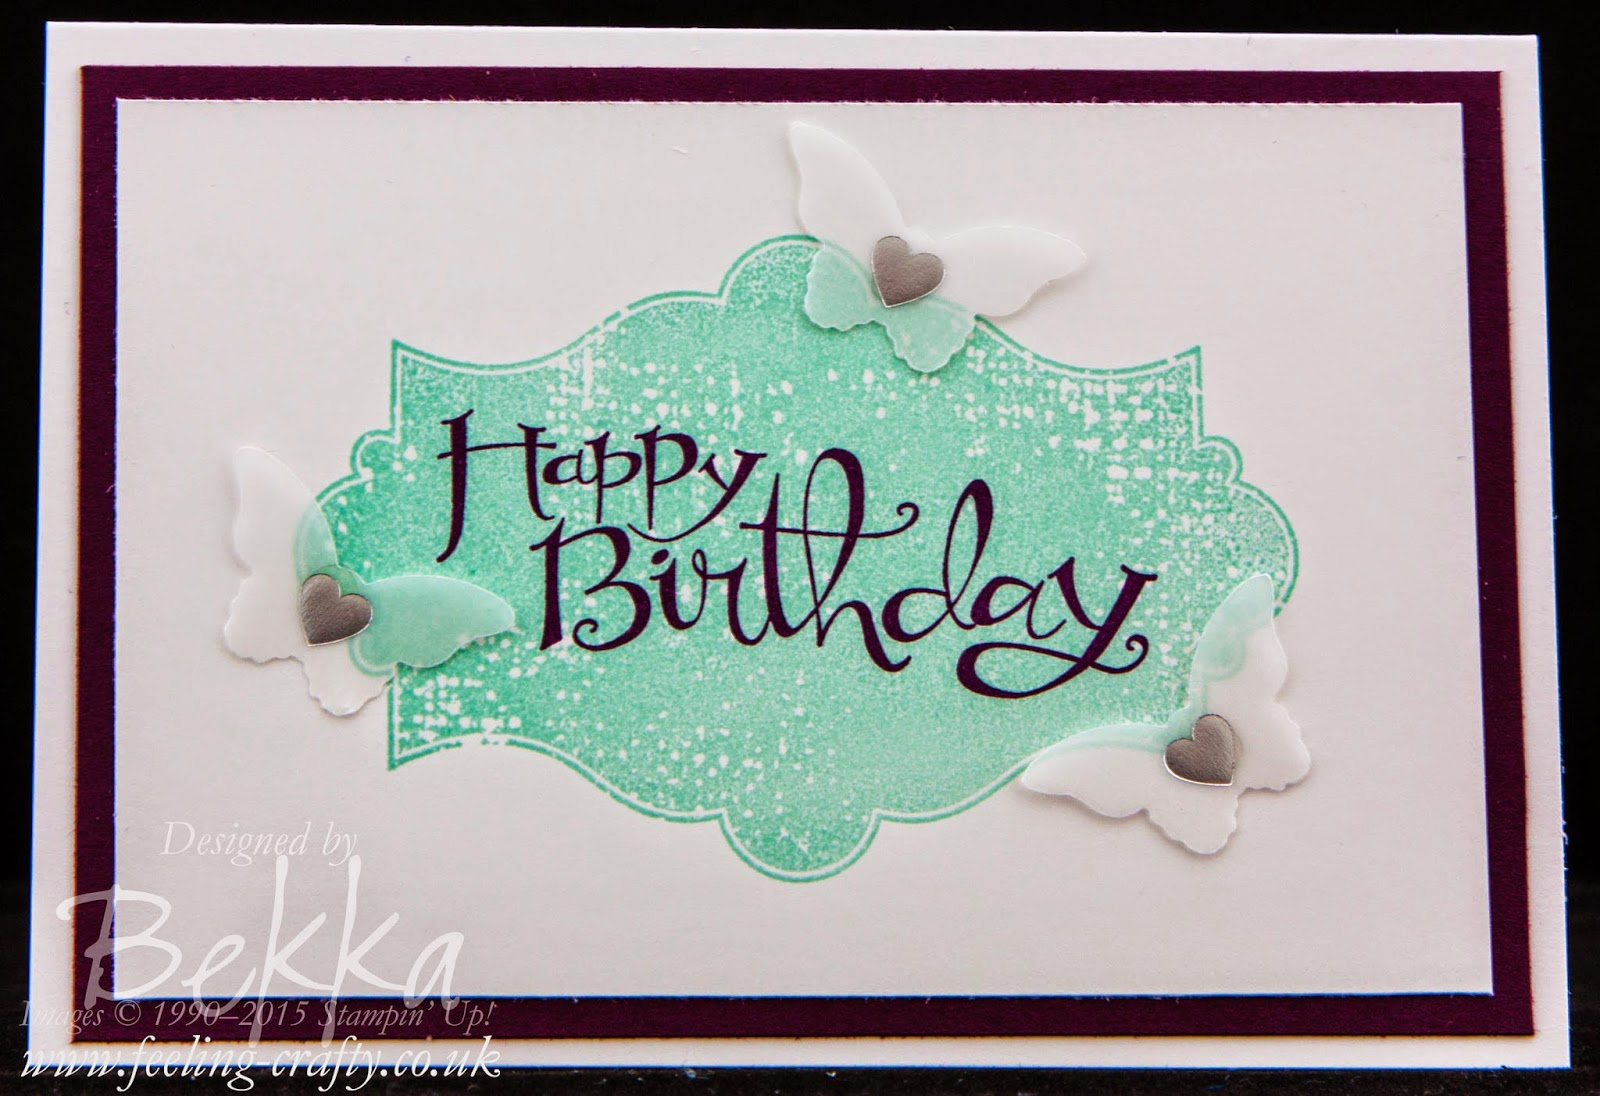 Birthday Card Featuring the Everything Eleanor and Sassy Salutations Stamp Sets from Stampin' Up! UK.  Check it out here